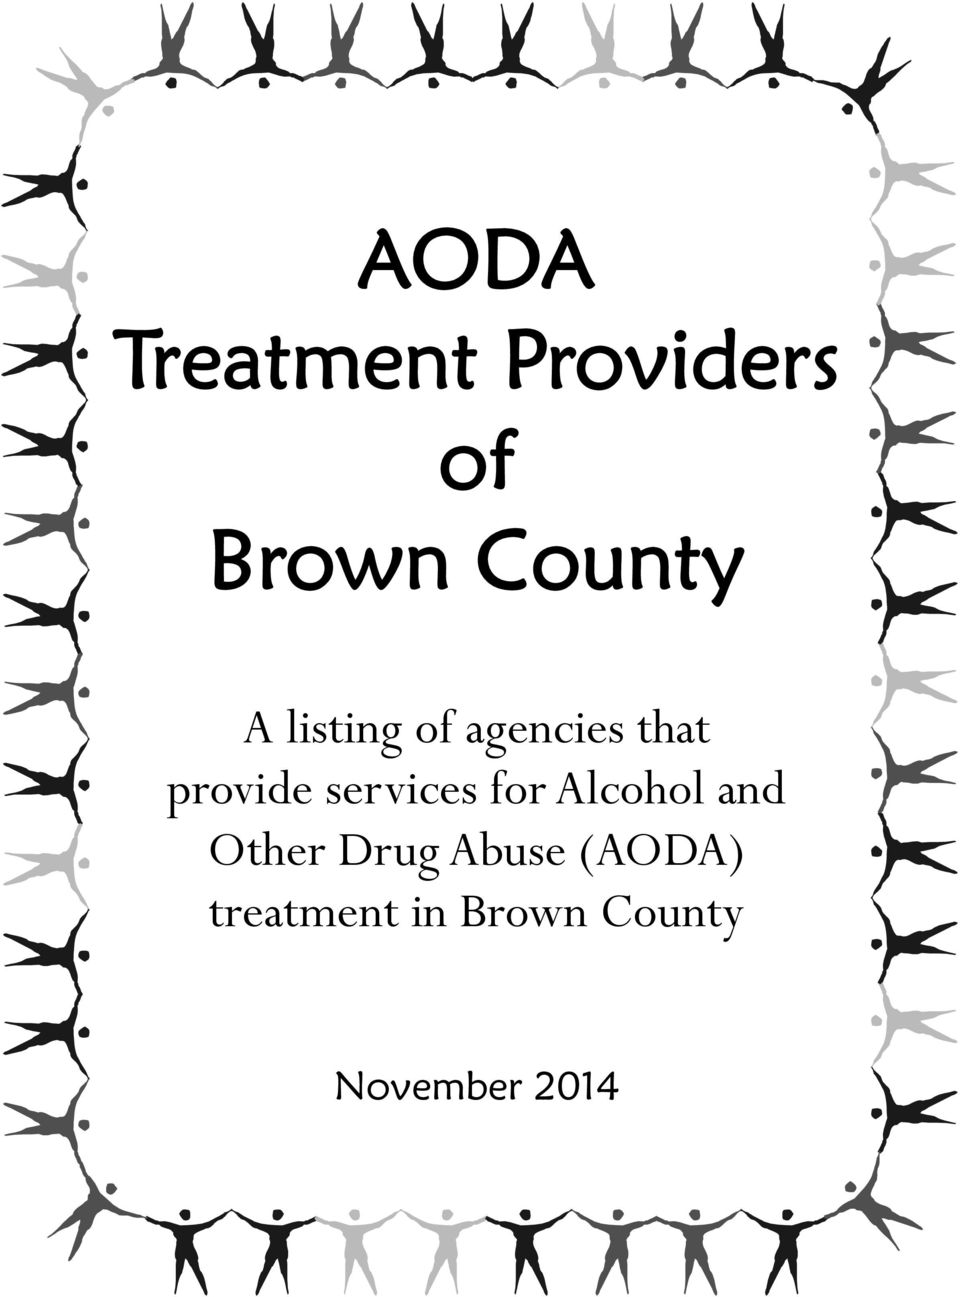 services for Alcohol and Other Drug